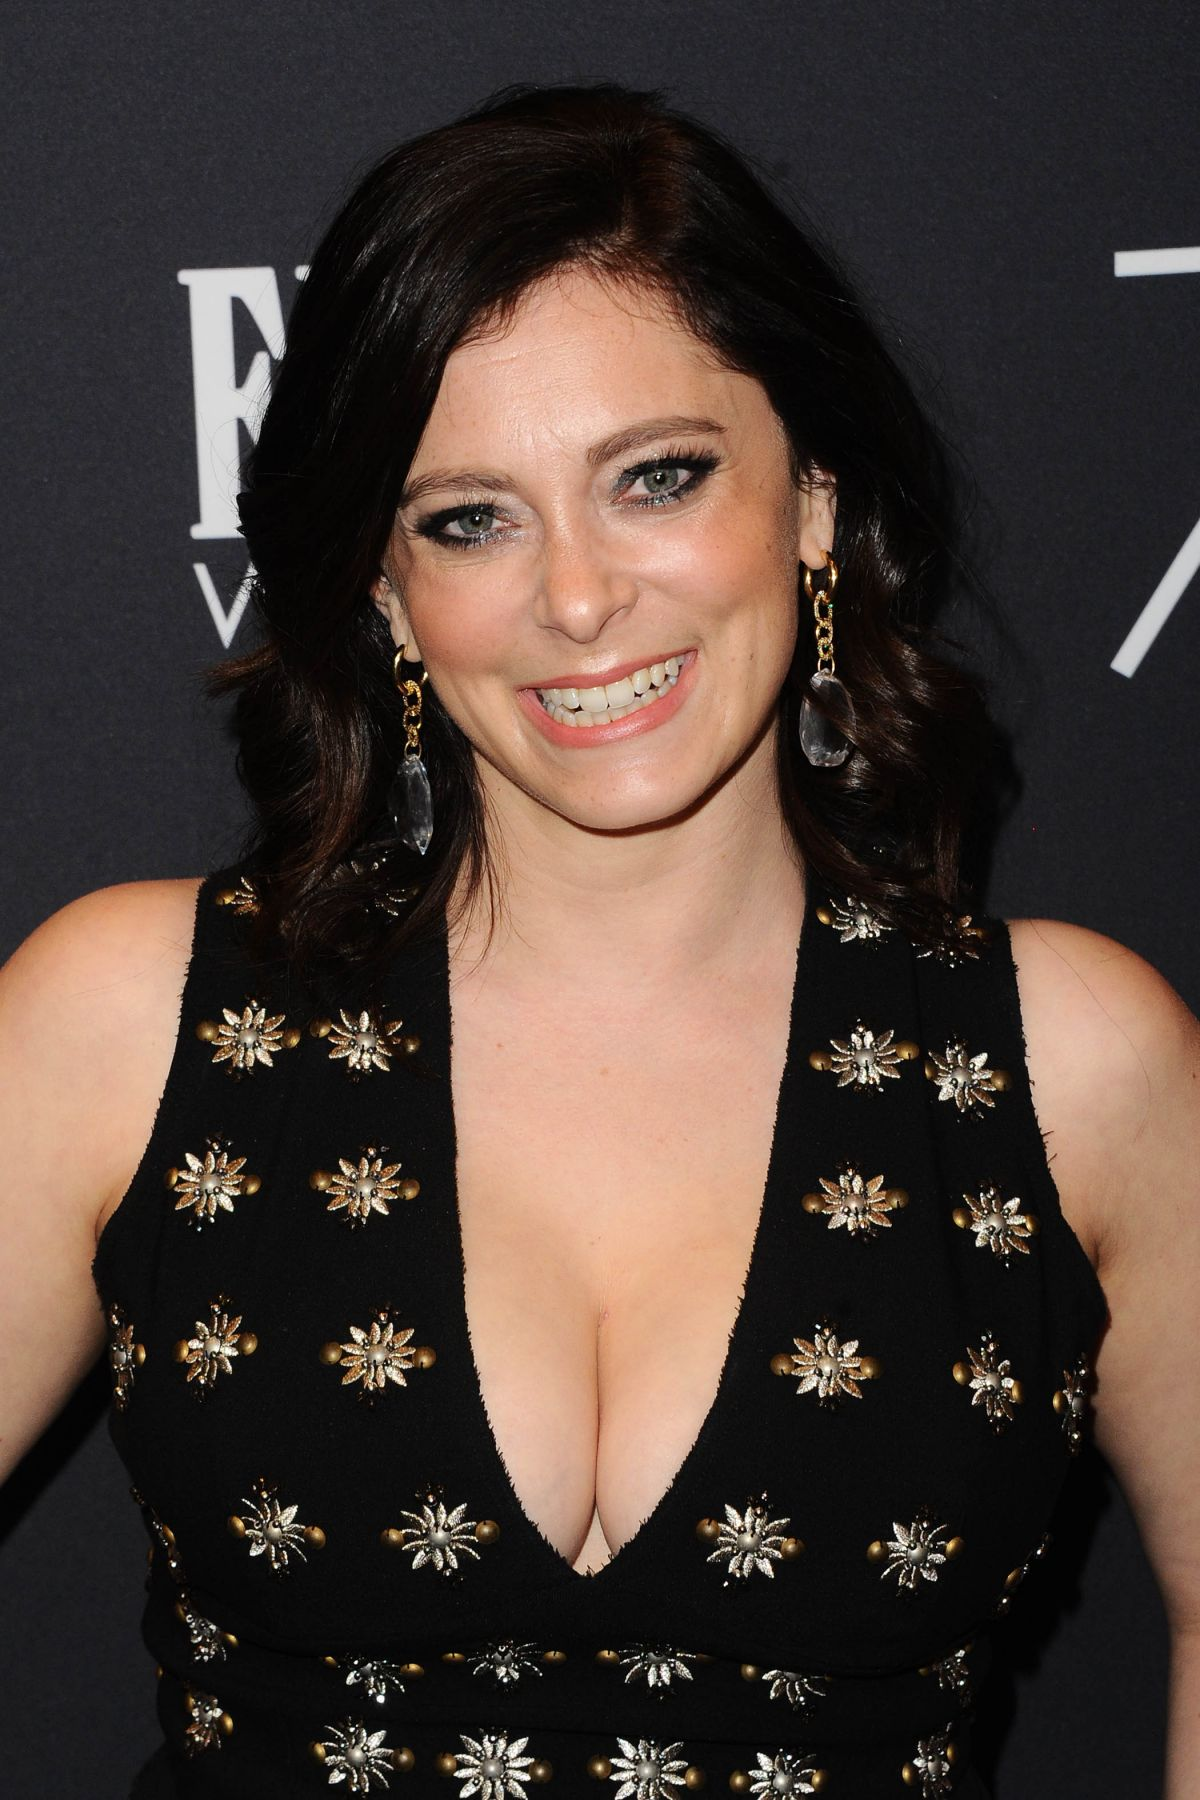 Pic Rachel Bloom nude (24 photo), Pussy, Fappening, Boobs, cameltoe 2015